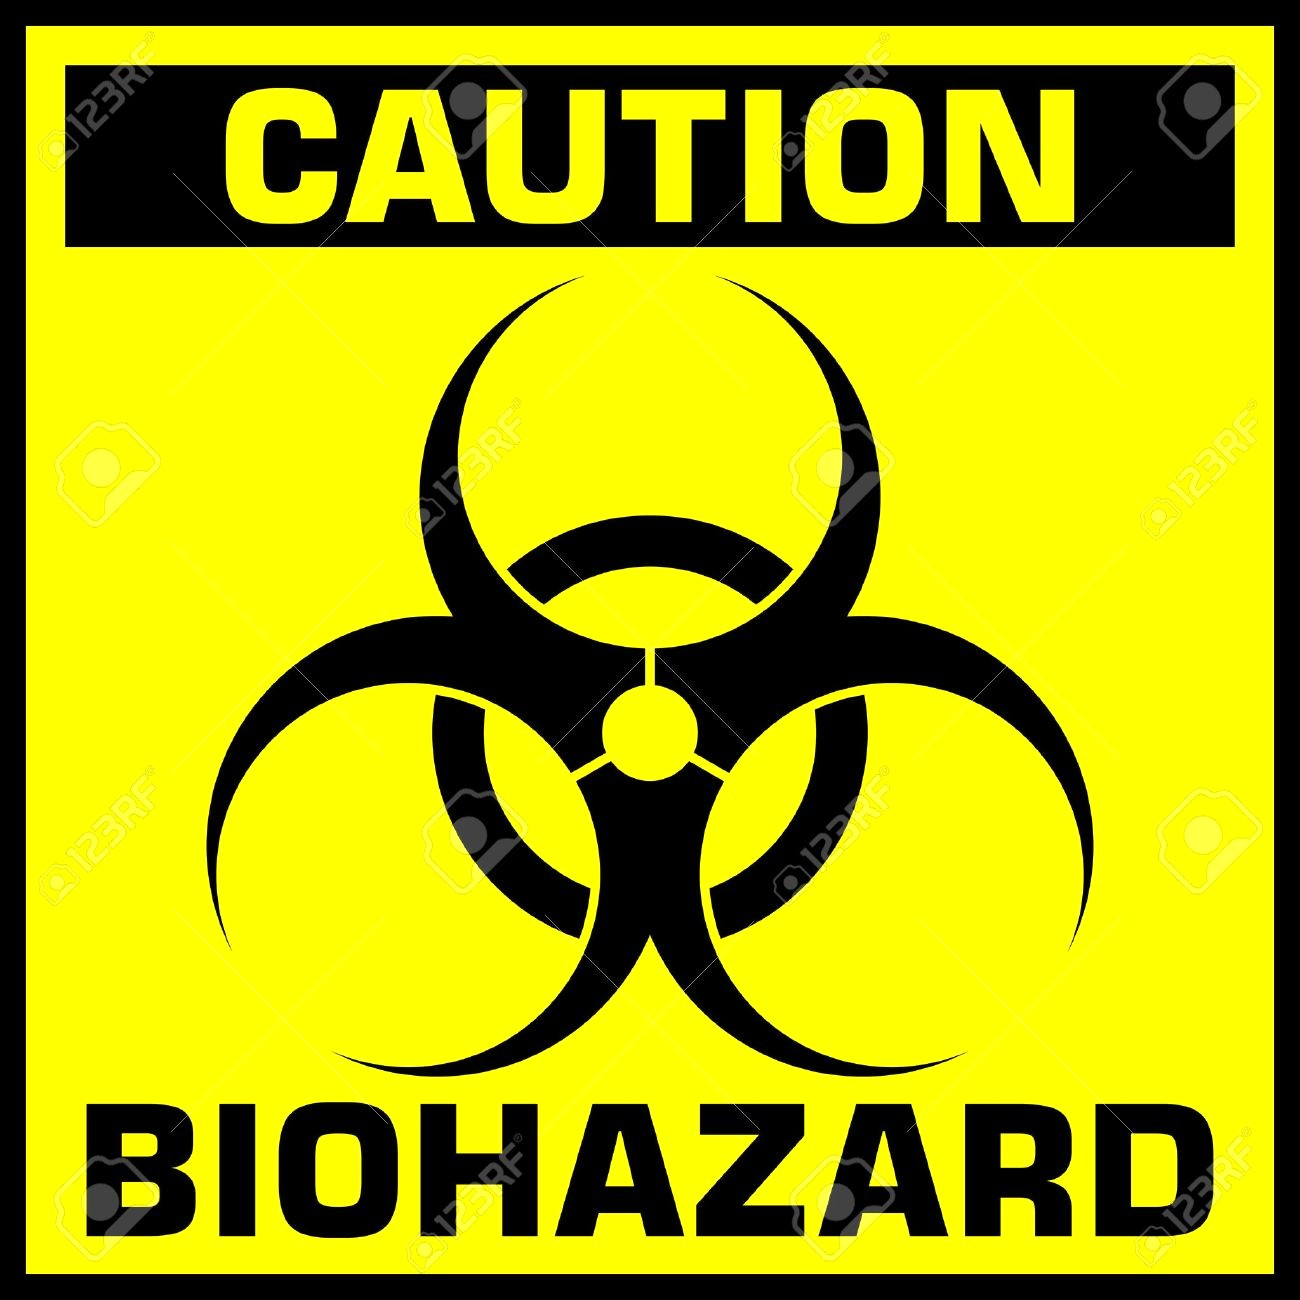 photograph relating to Biohazard Sign Printable titled Biohazard Signal Vector at  No cost for individual